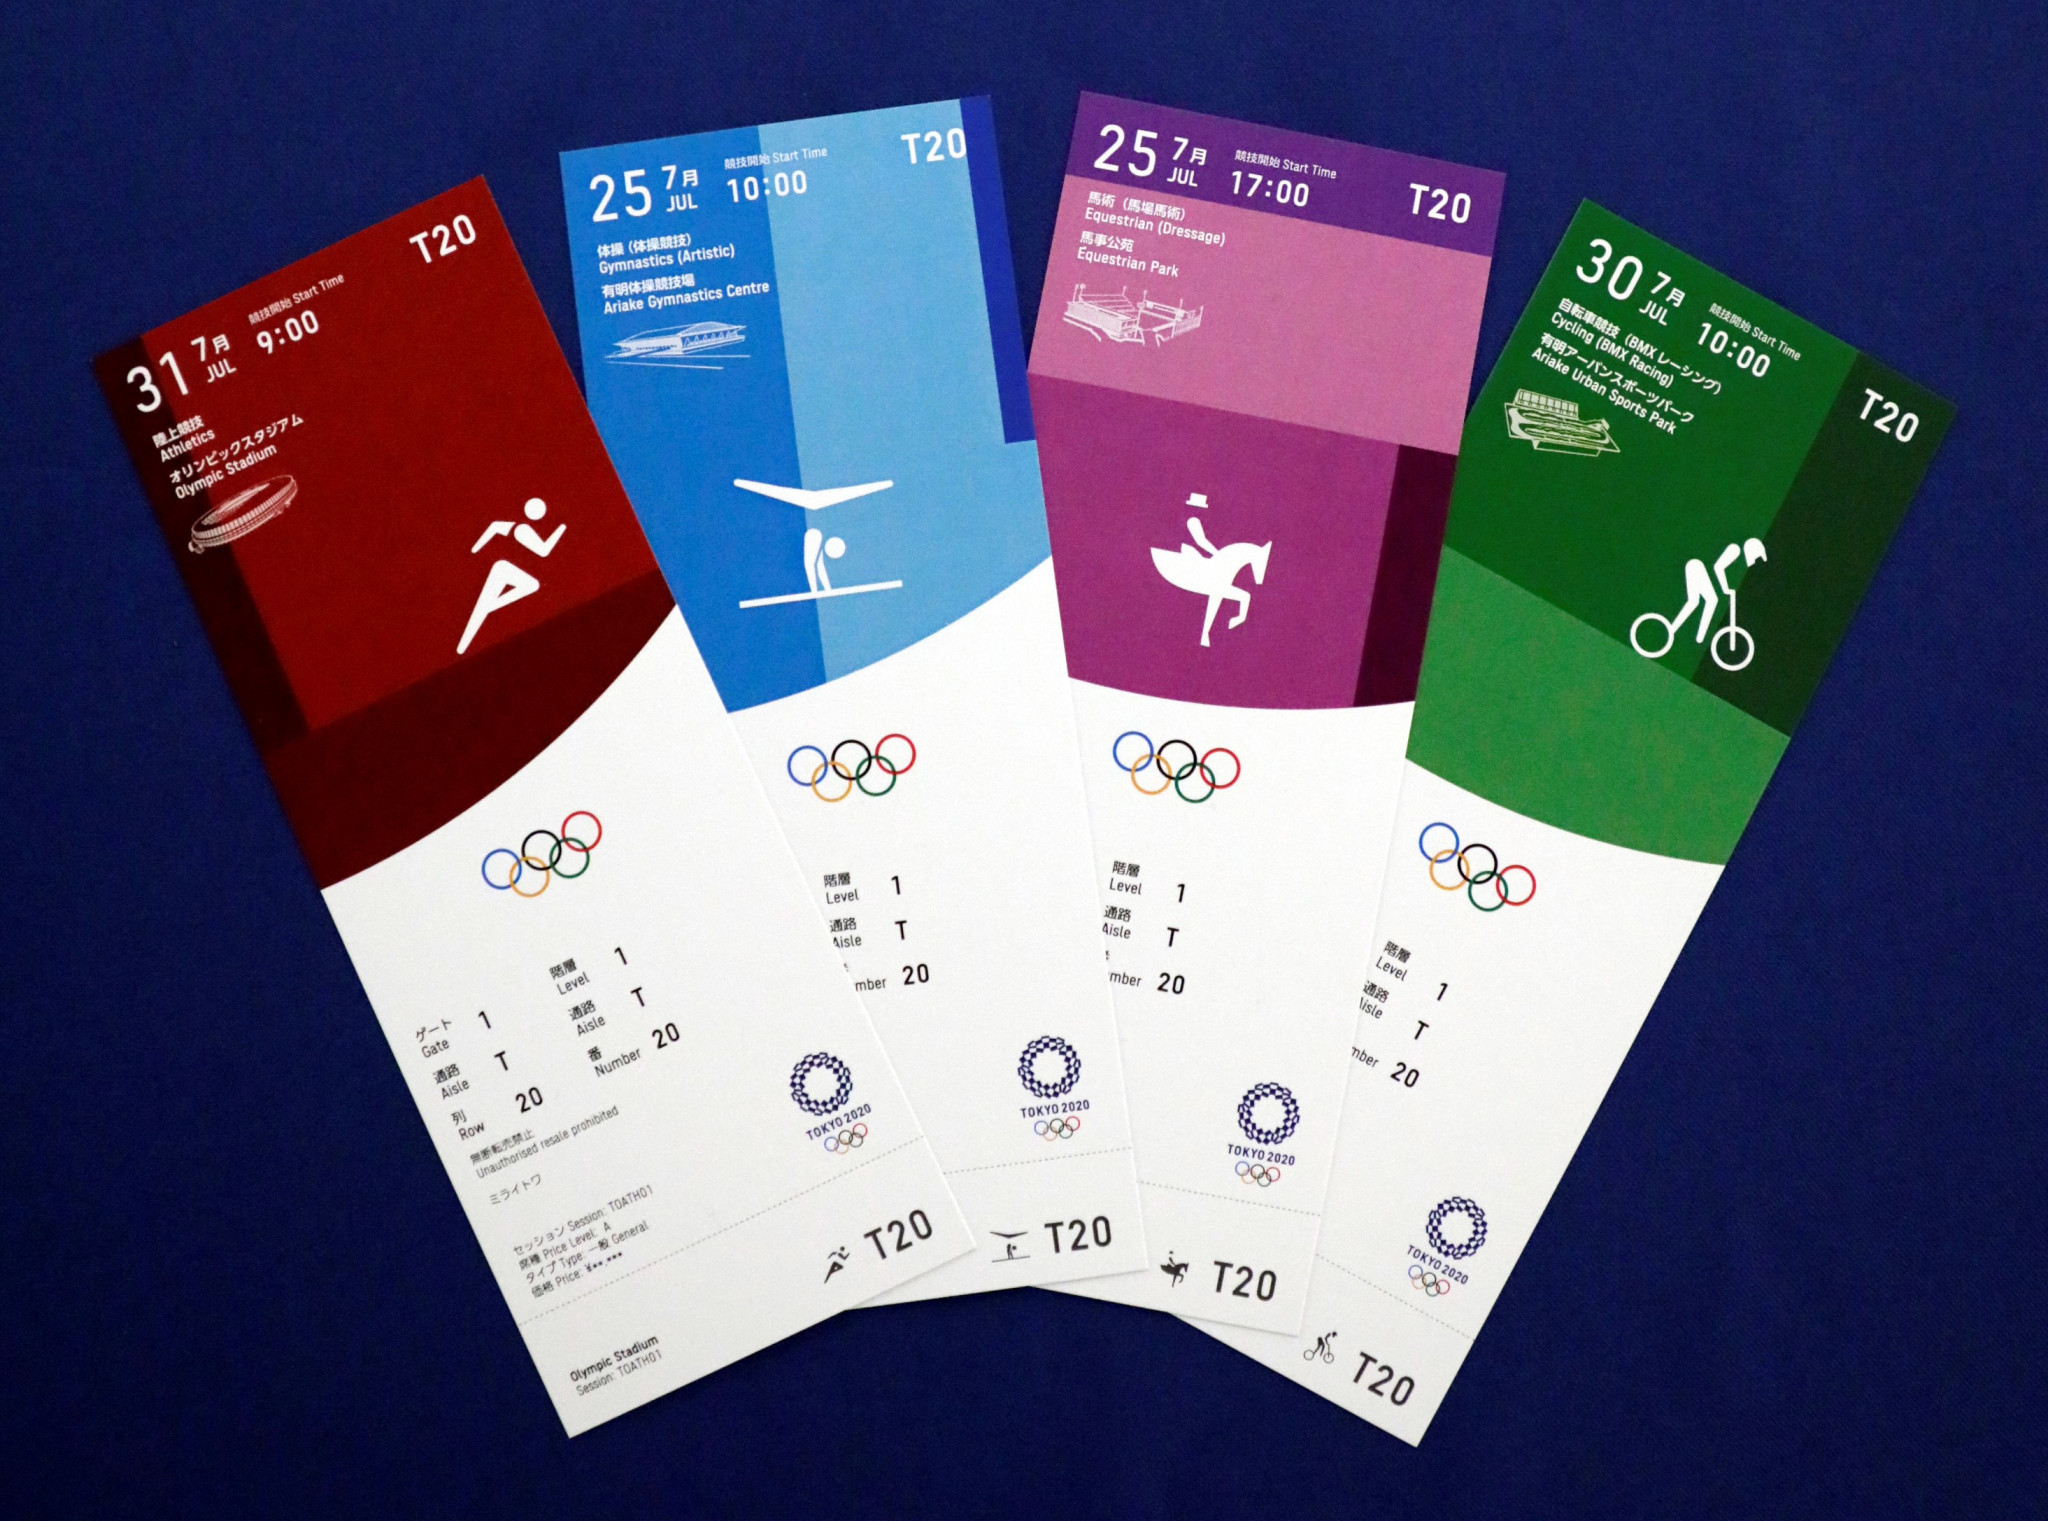 The refund process for Tokyo 2020 tickets is set to begin next month ©Tokyo 2020